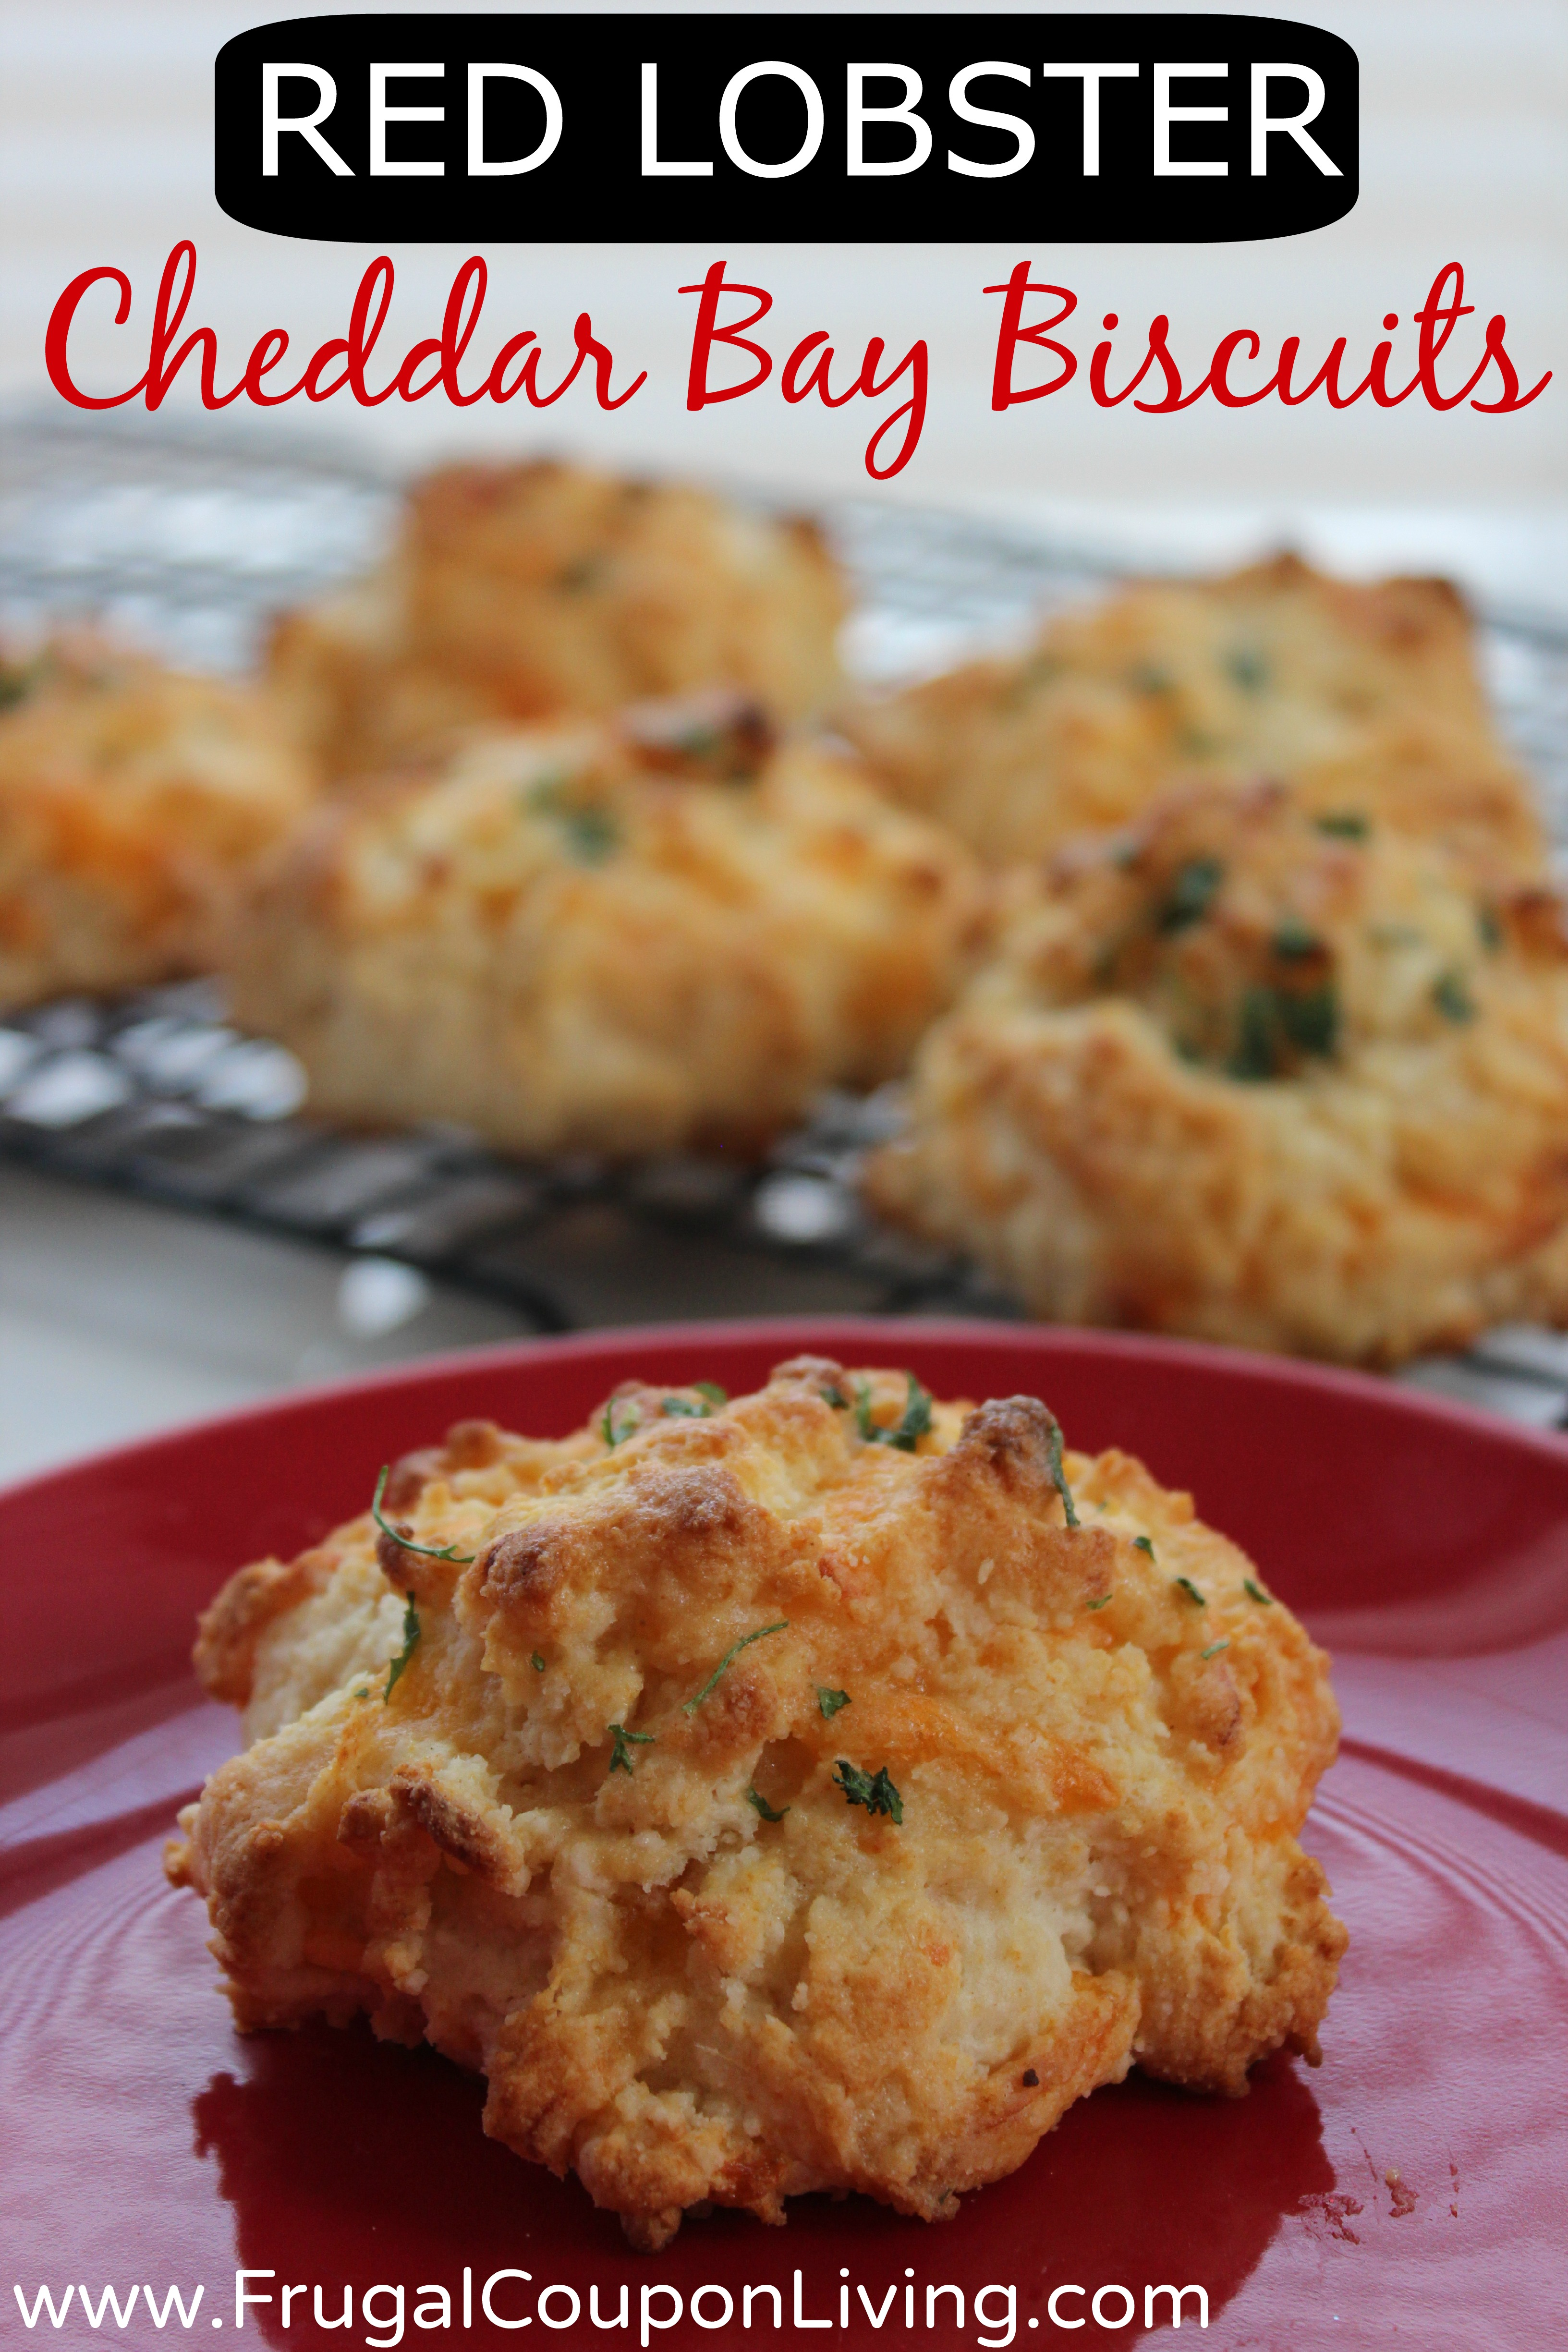 Red Lobster Copycat Cheddar Bay Biscuits Recipe - Simple and Easy